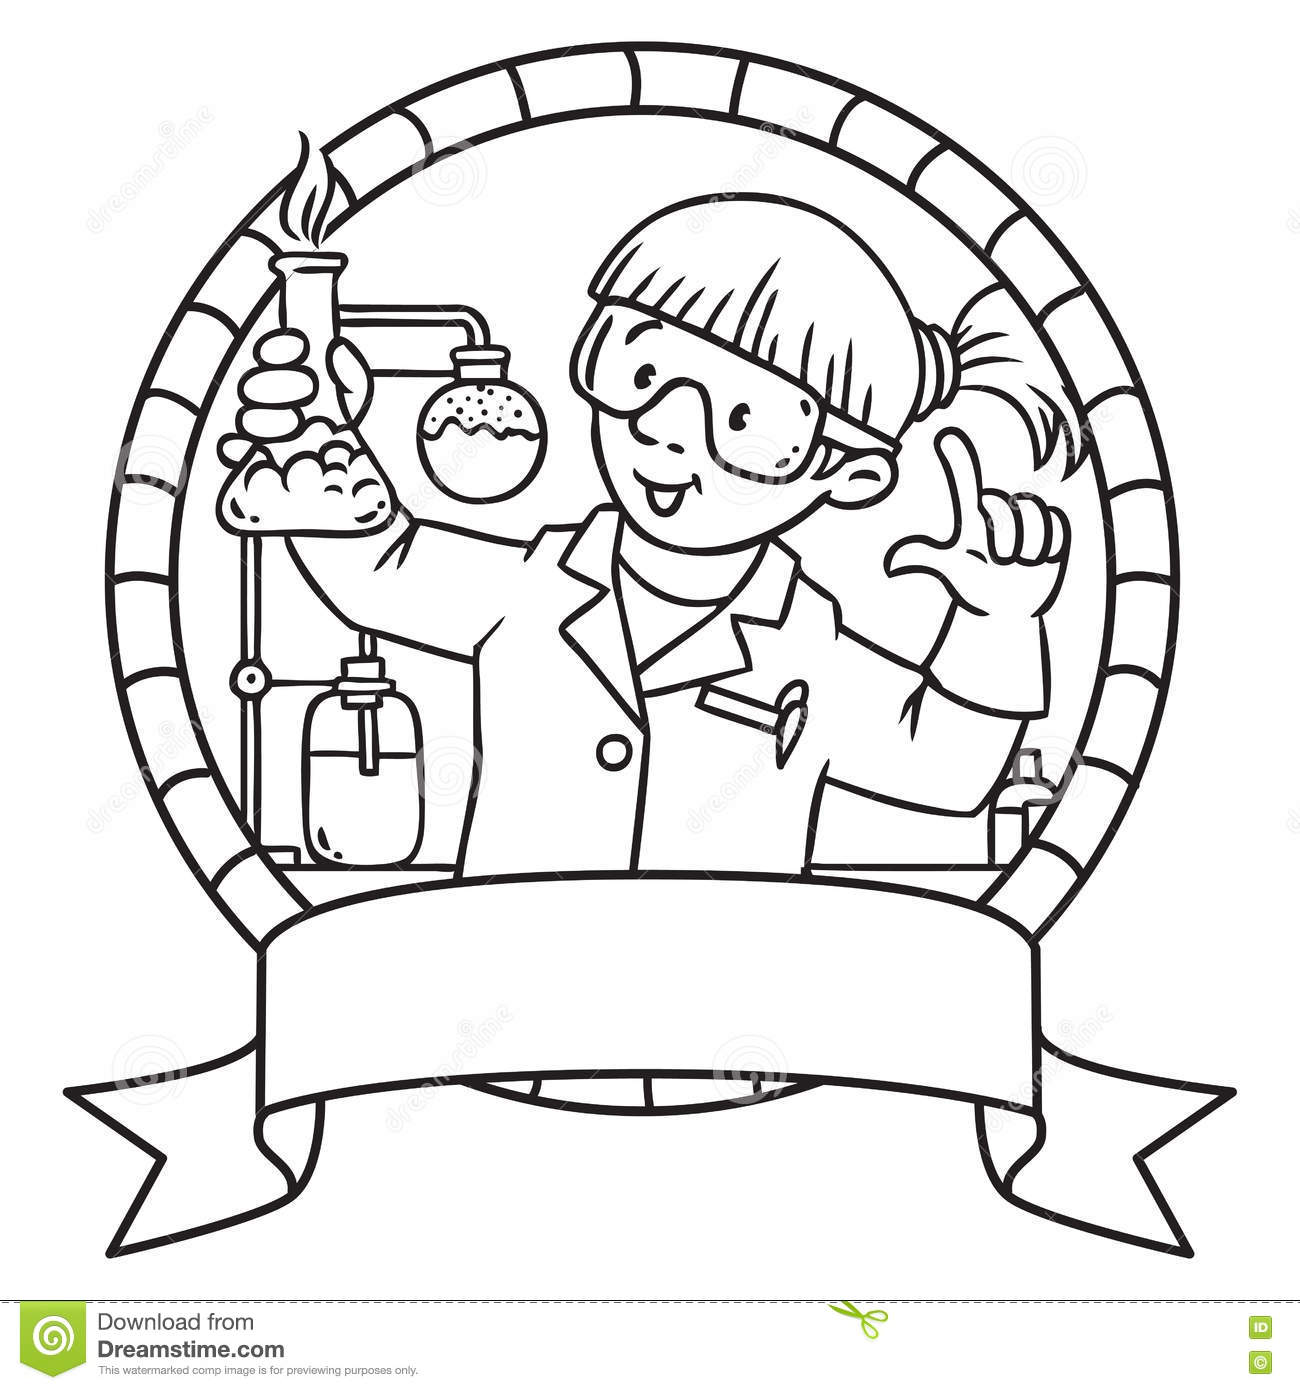 Coloring Book Of Funny Chemist. Emblem. Stock Vector